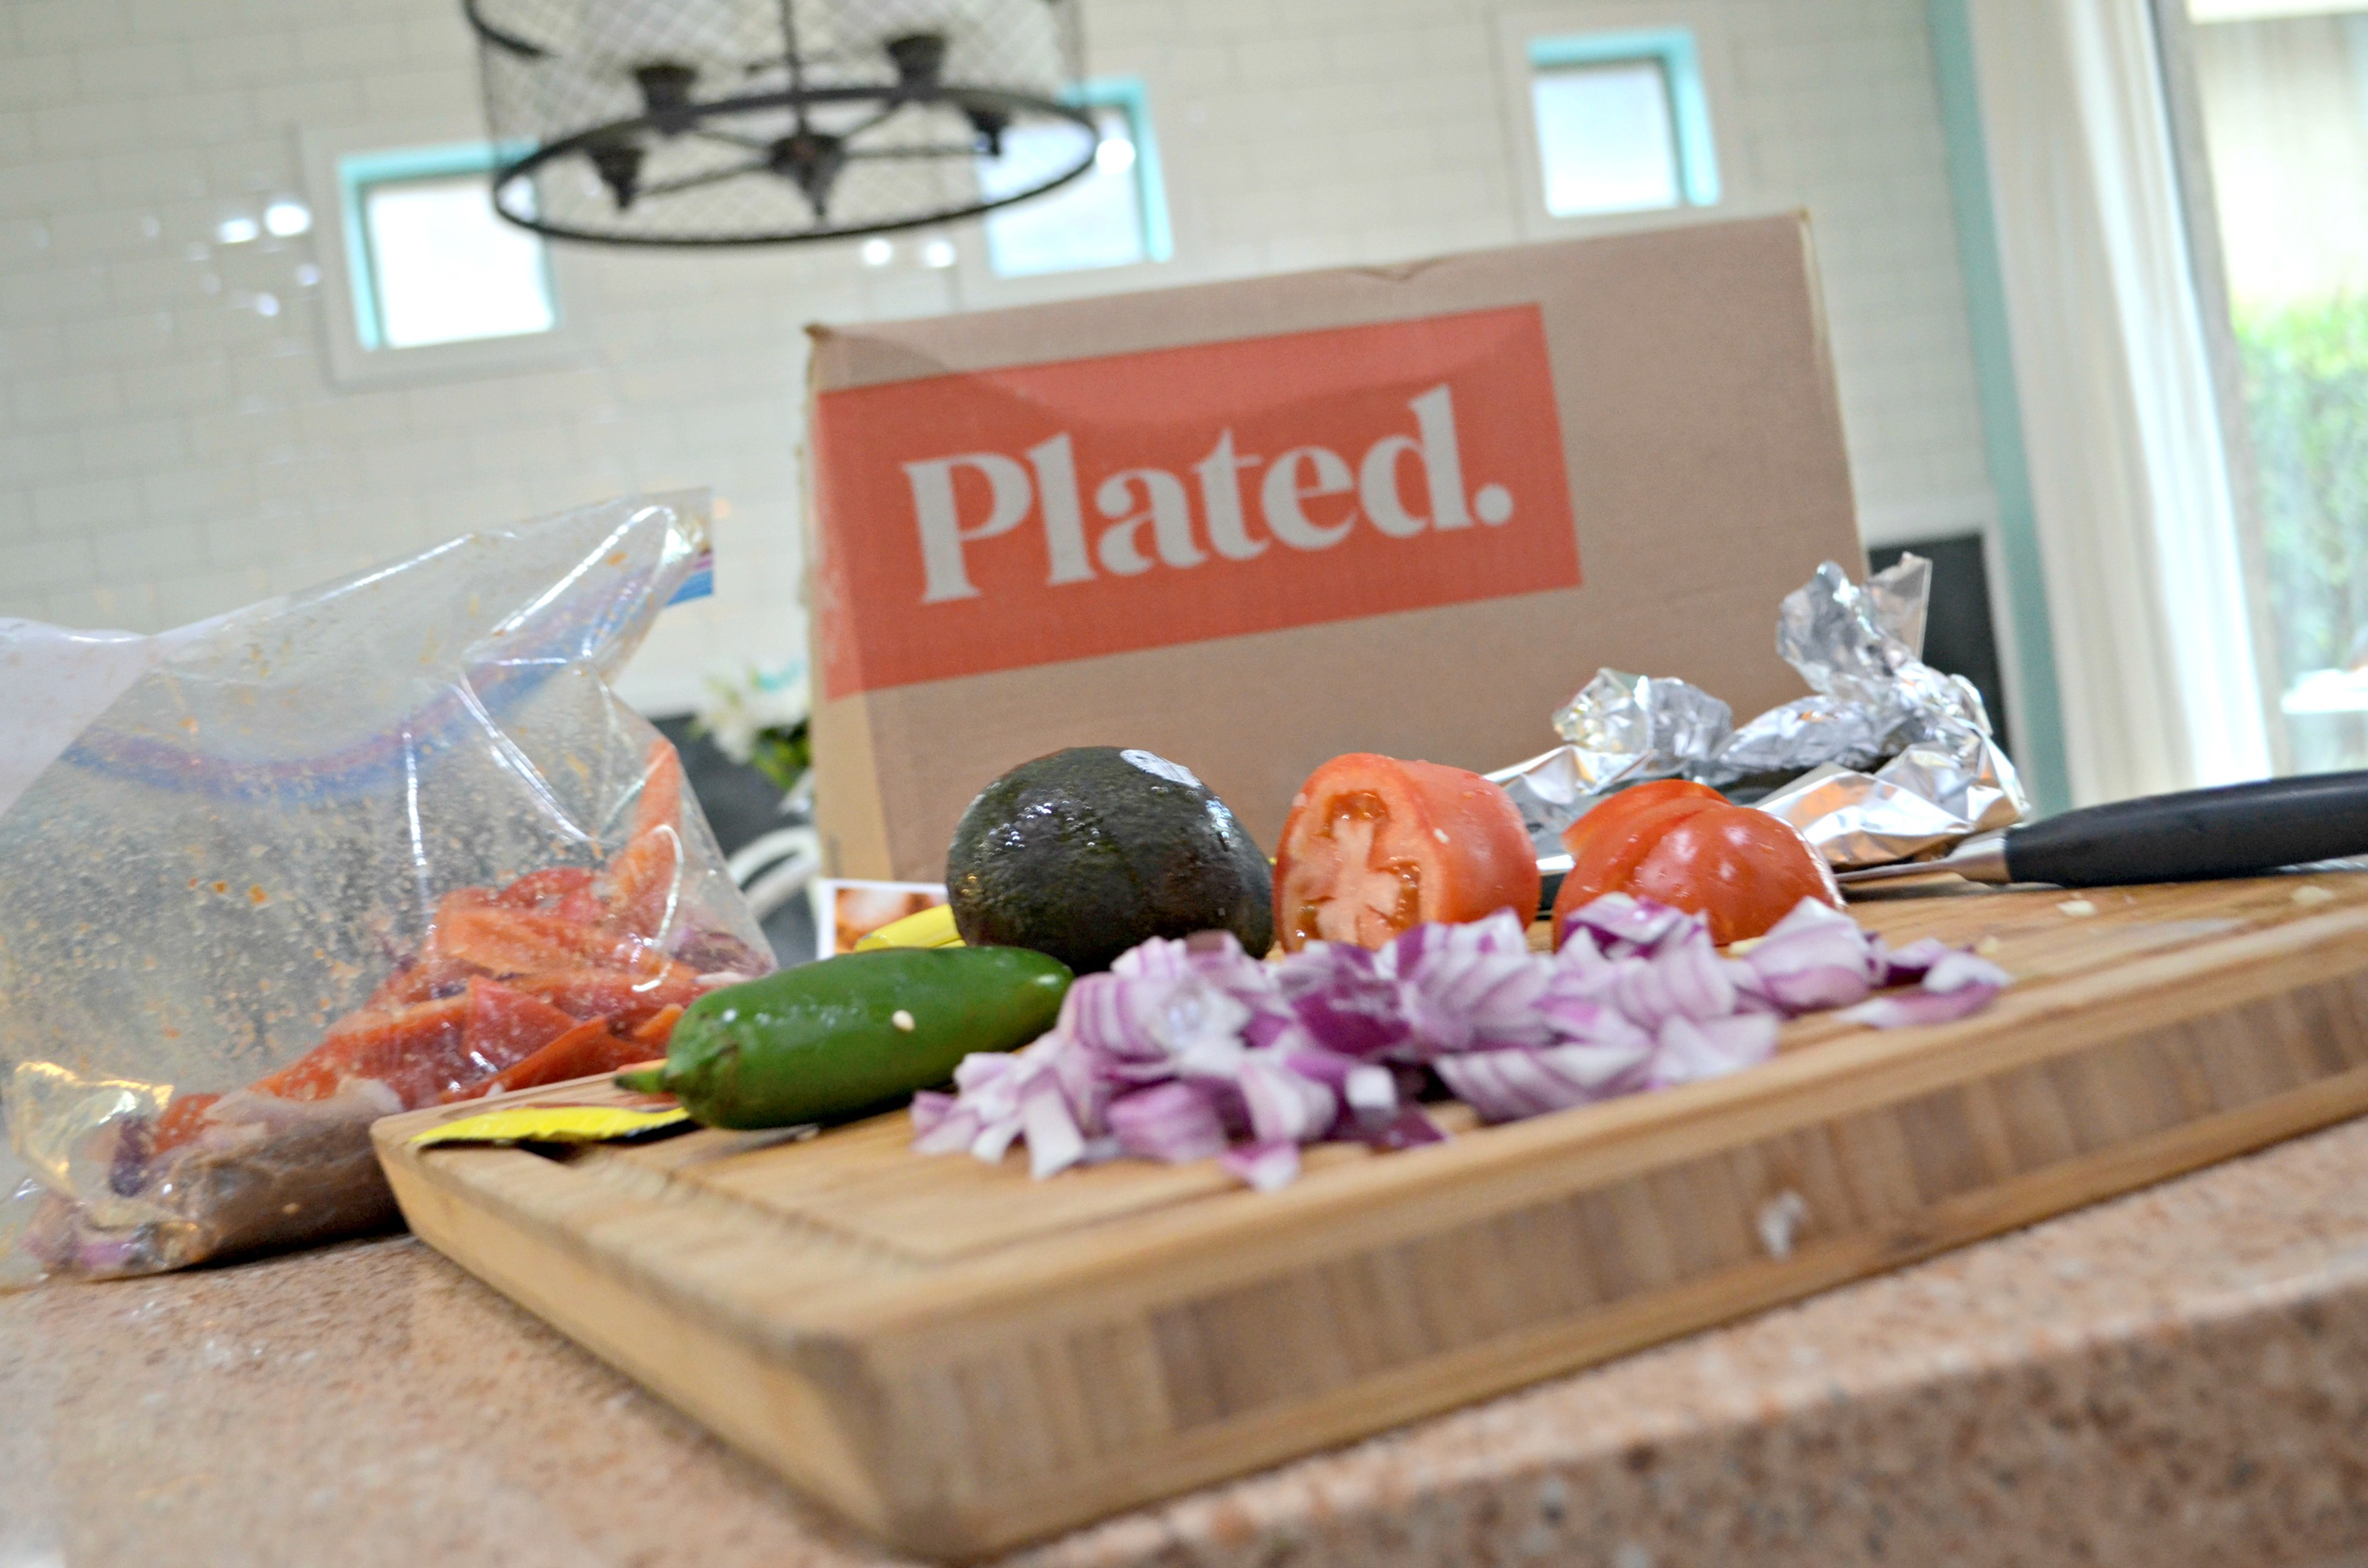 deal plated meal kit – Plated subscription box ingredients on a kitchen counter.